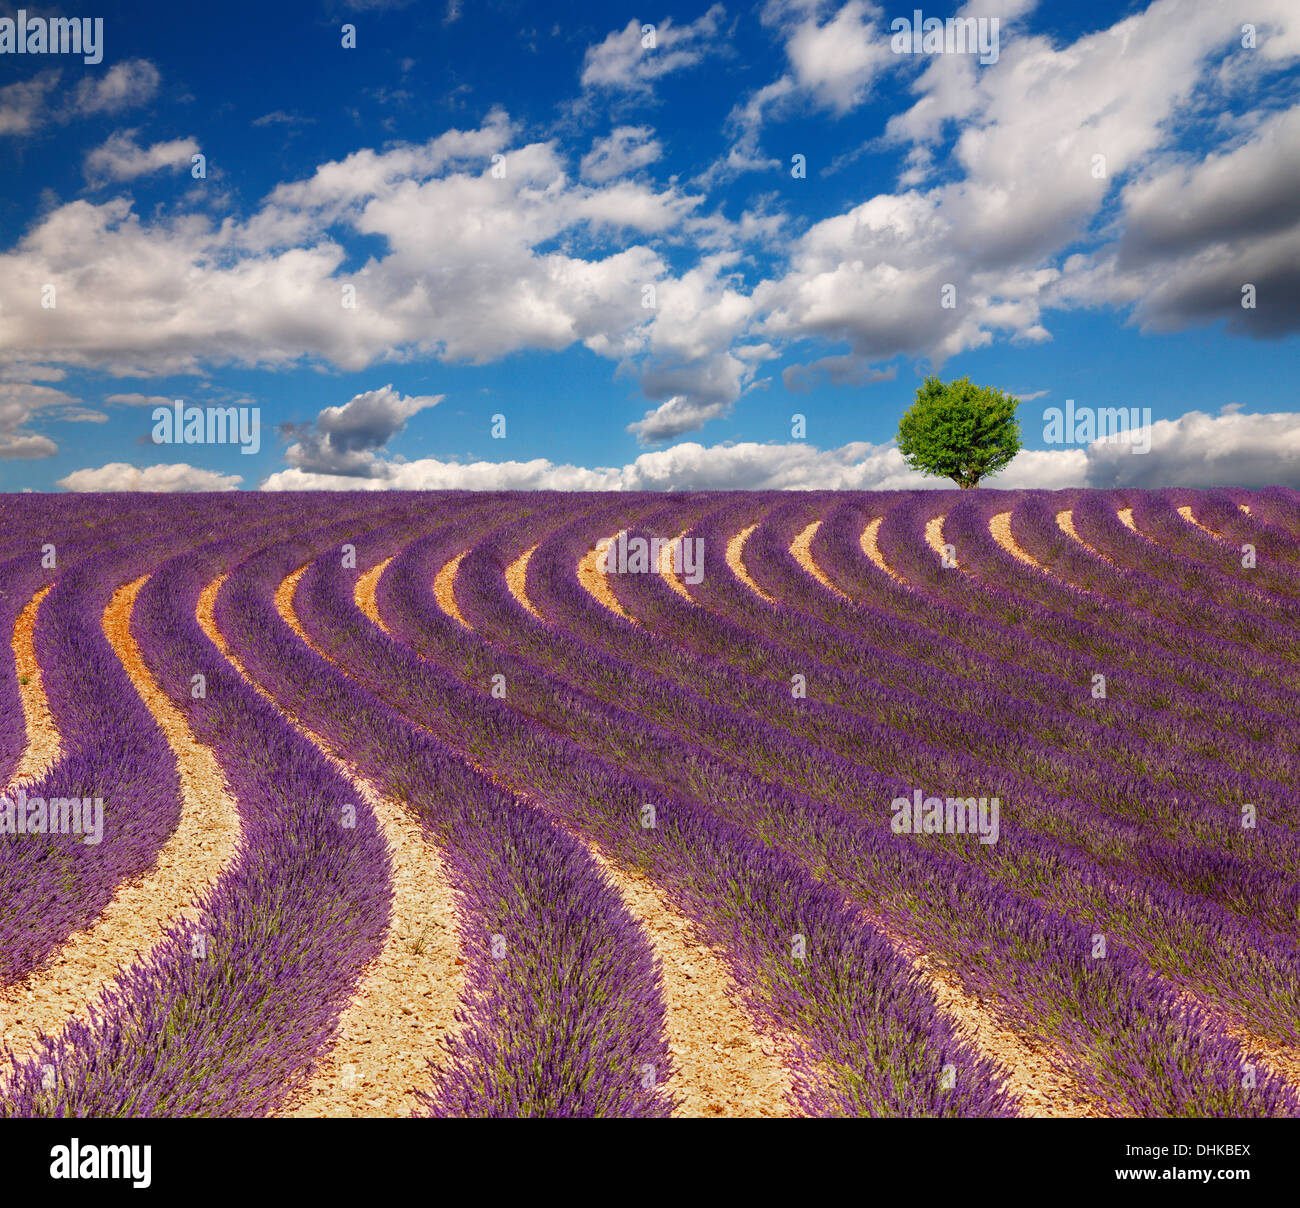 Lavender field with beautiful clouds and one tree on the horizon. France, Provence. - Stock Image